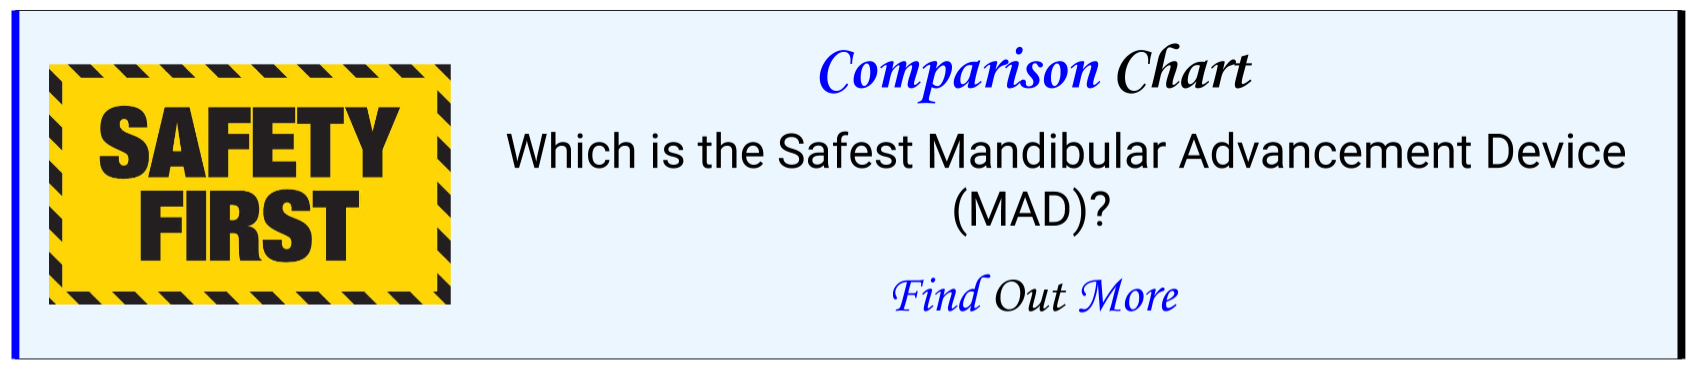 safety-comparison-link